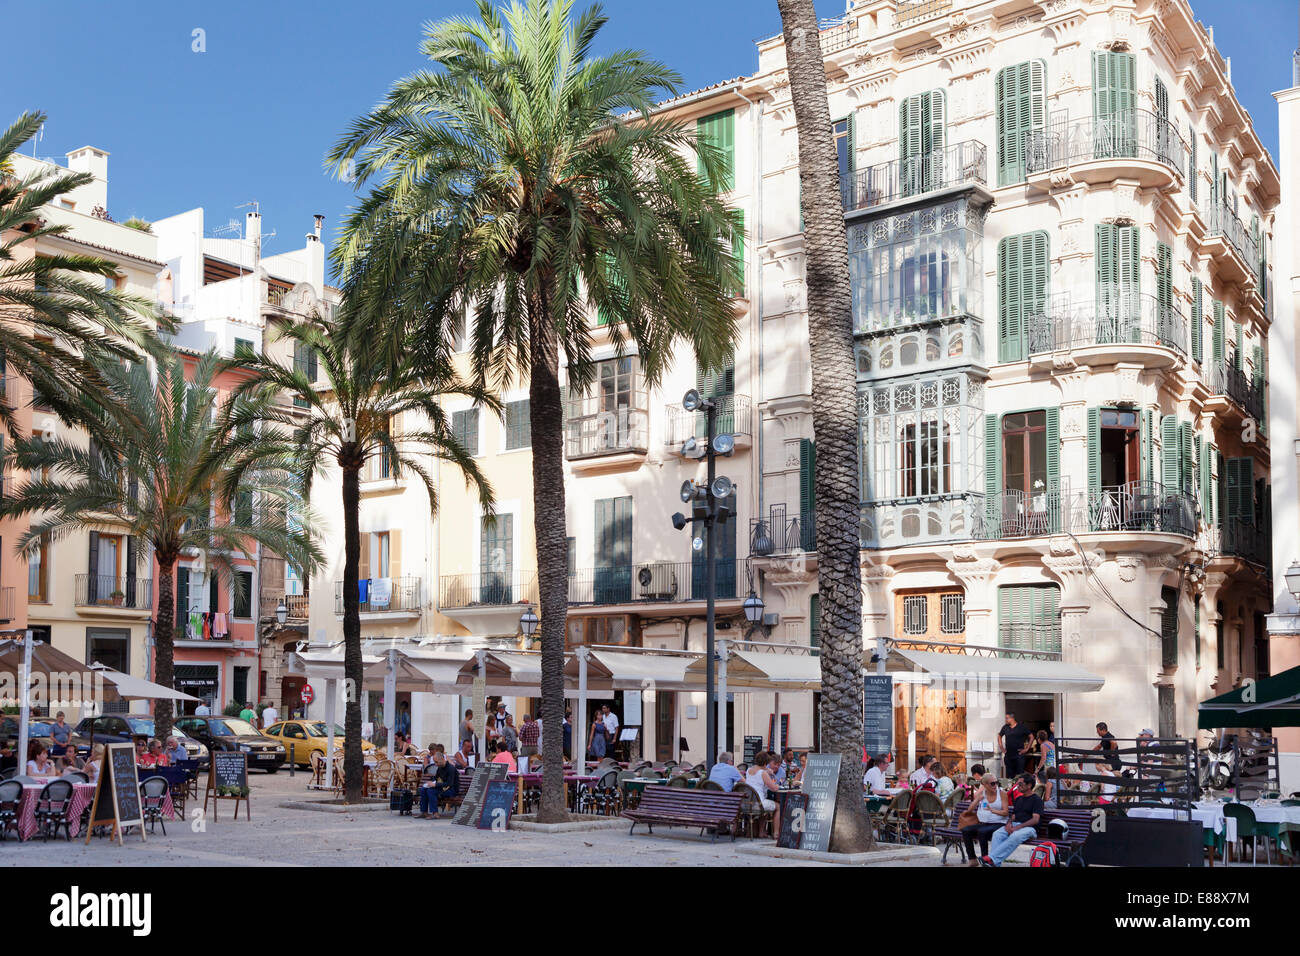 Stock Photo Overview Palma De Mallorca With Cathedral At Dusk Palma De Mallorca 14550401 furthermore Stock Photo Painted Yellow House With Dark Blue Front Door In Bristol 310342254 furthermore Stock Photo Interior Decoration Bar Restaurant La Boveda In The Old Town Ciutat 39965463 as well Stock Photo Restaurants And Street Cafes At Der Placa De La Llotja Palma De Mallorca 73954936 further Royalty Free Stock Image City Canal Palma De Mallorca Spain Image31380996. on royalty free stock images palma de mallorca old city